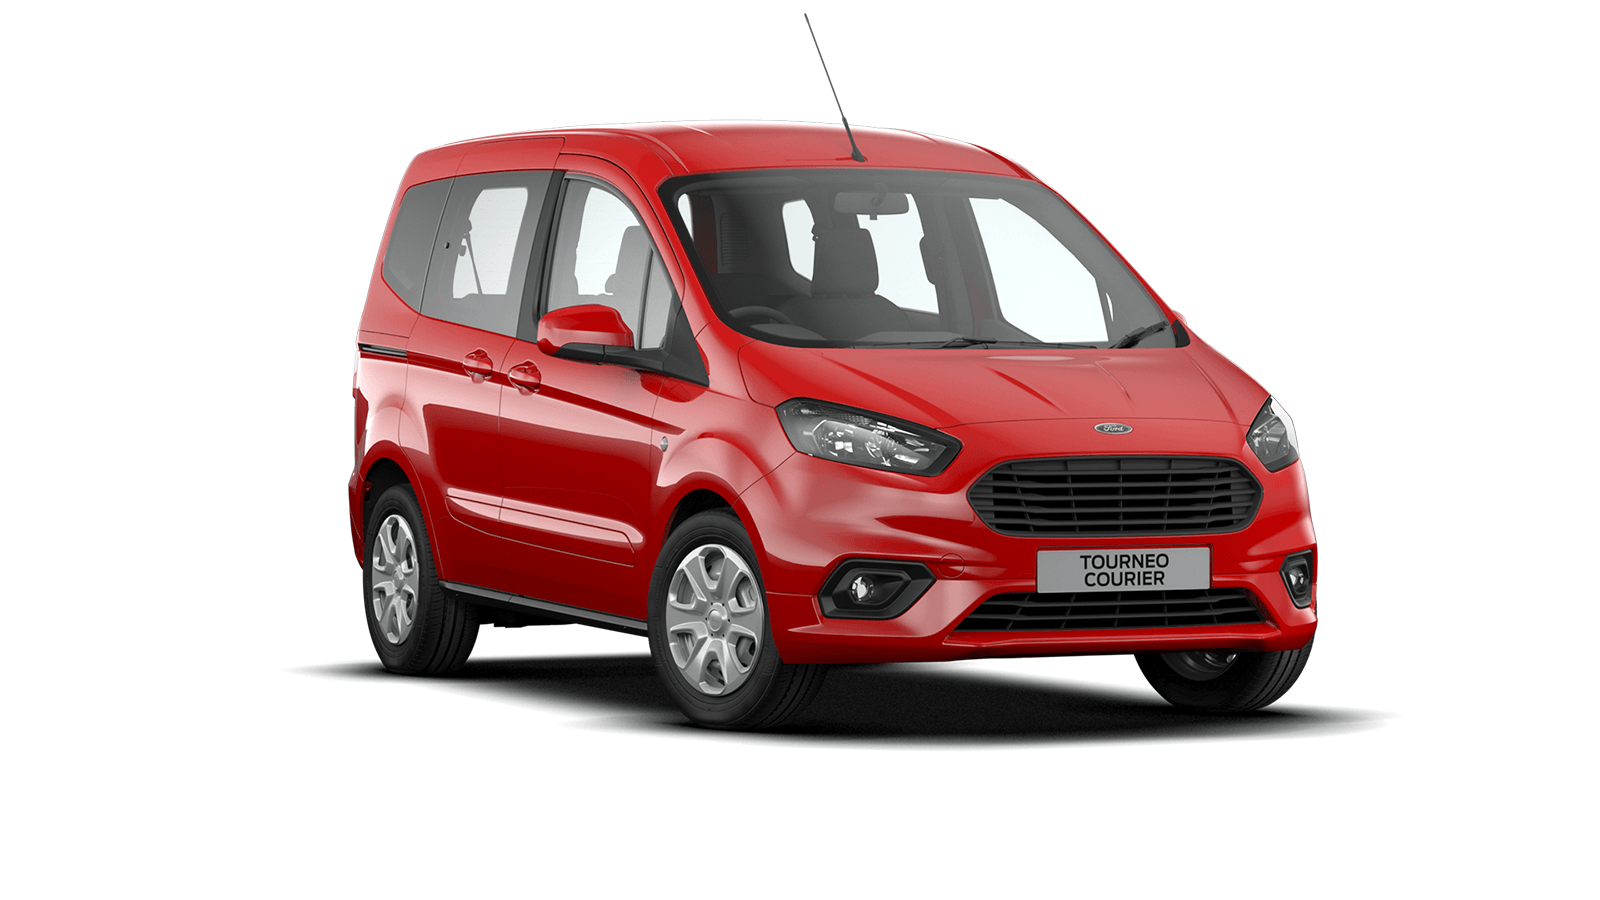 New Ford Tourneo Courier at Browne & Day